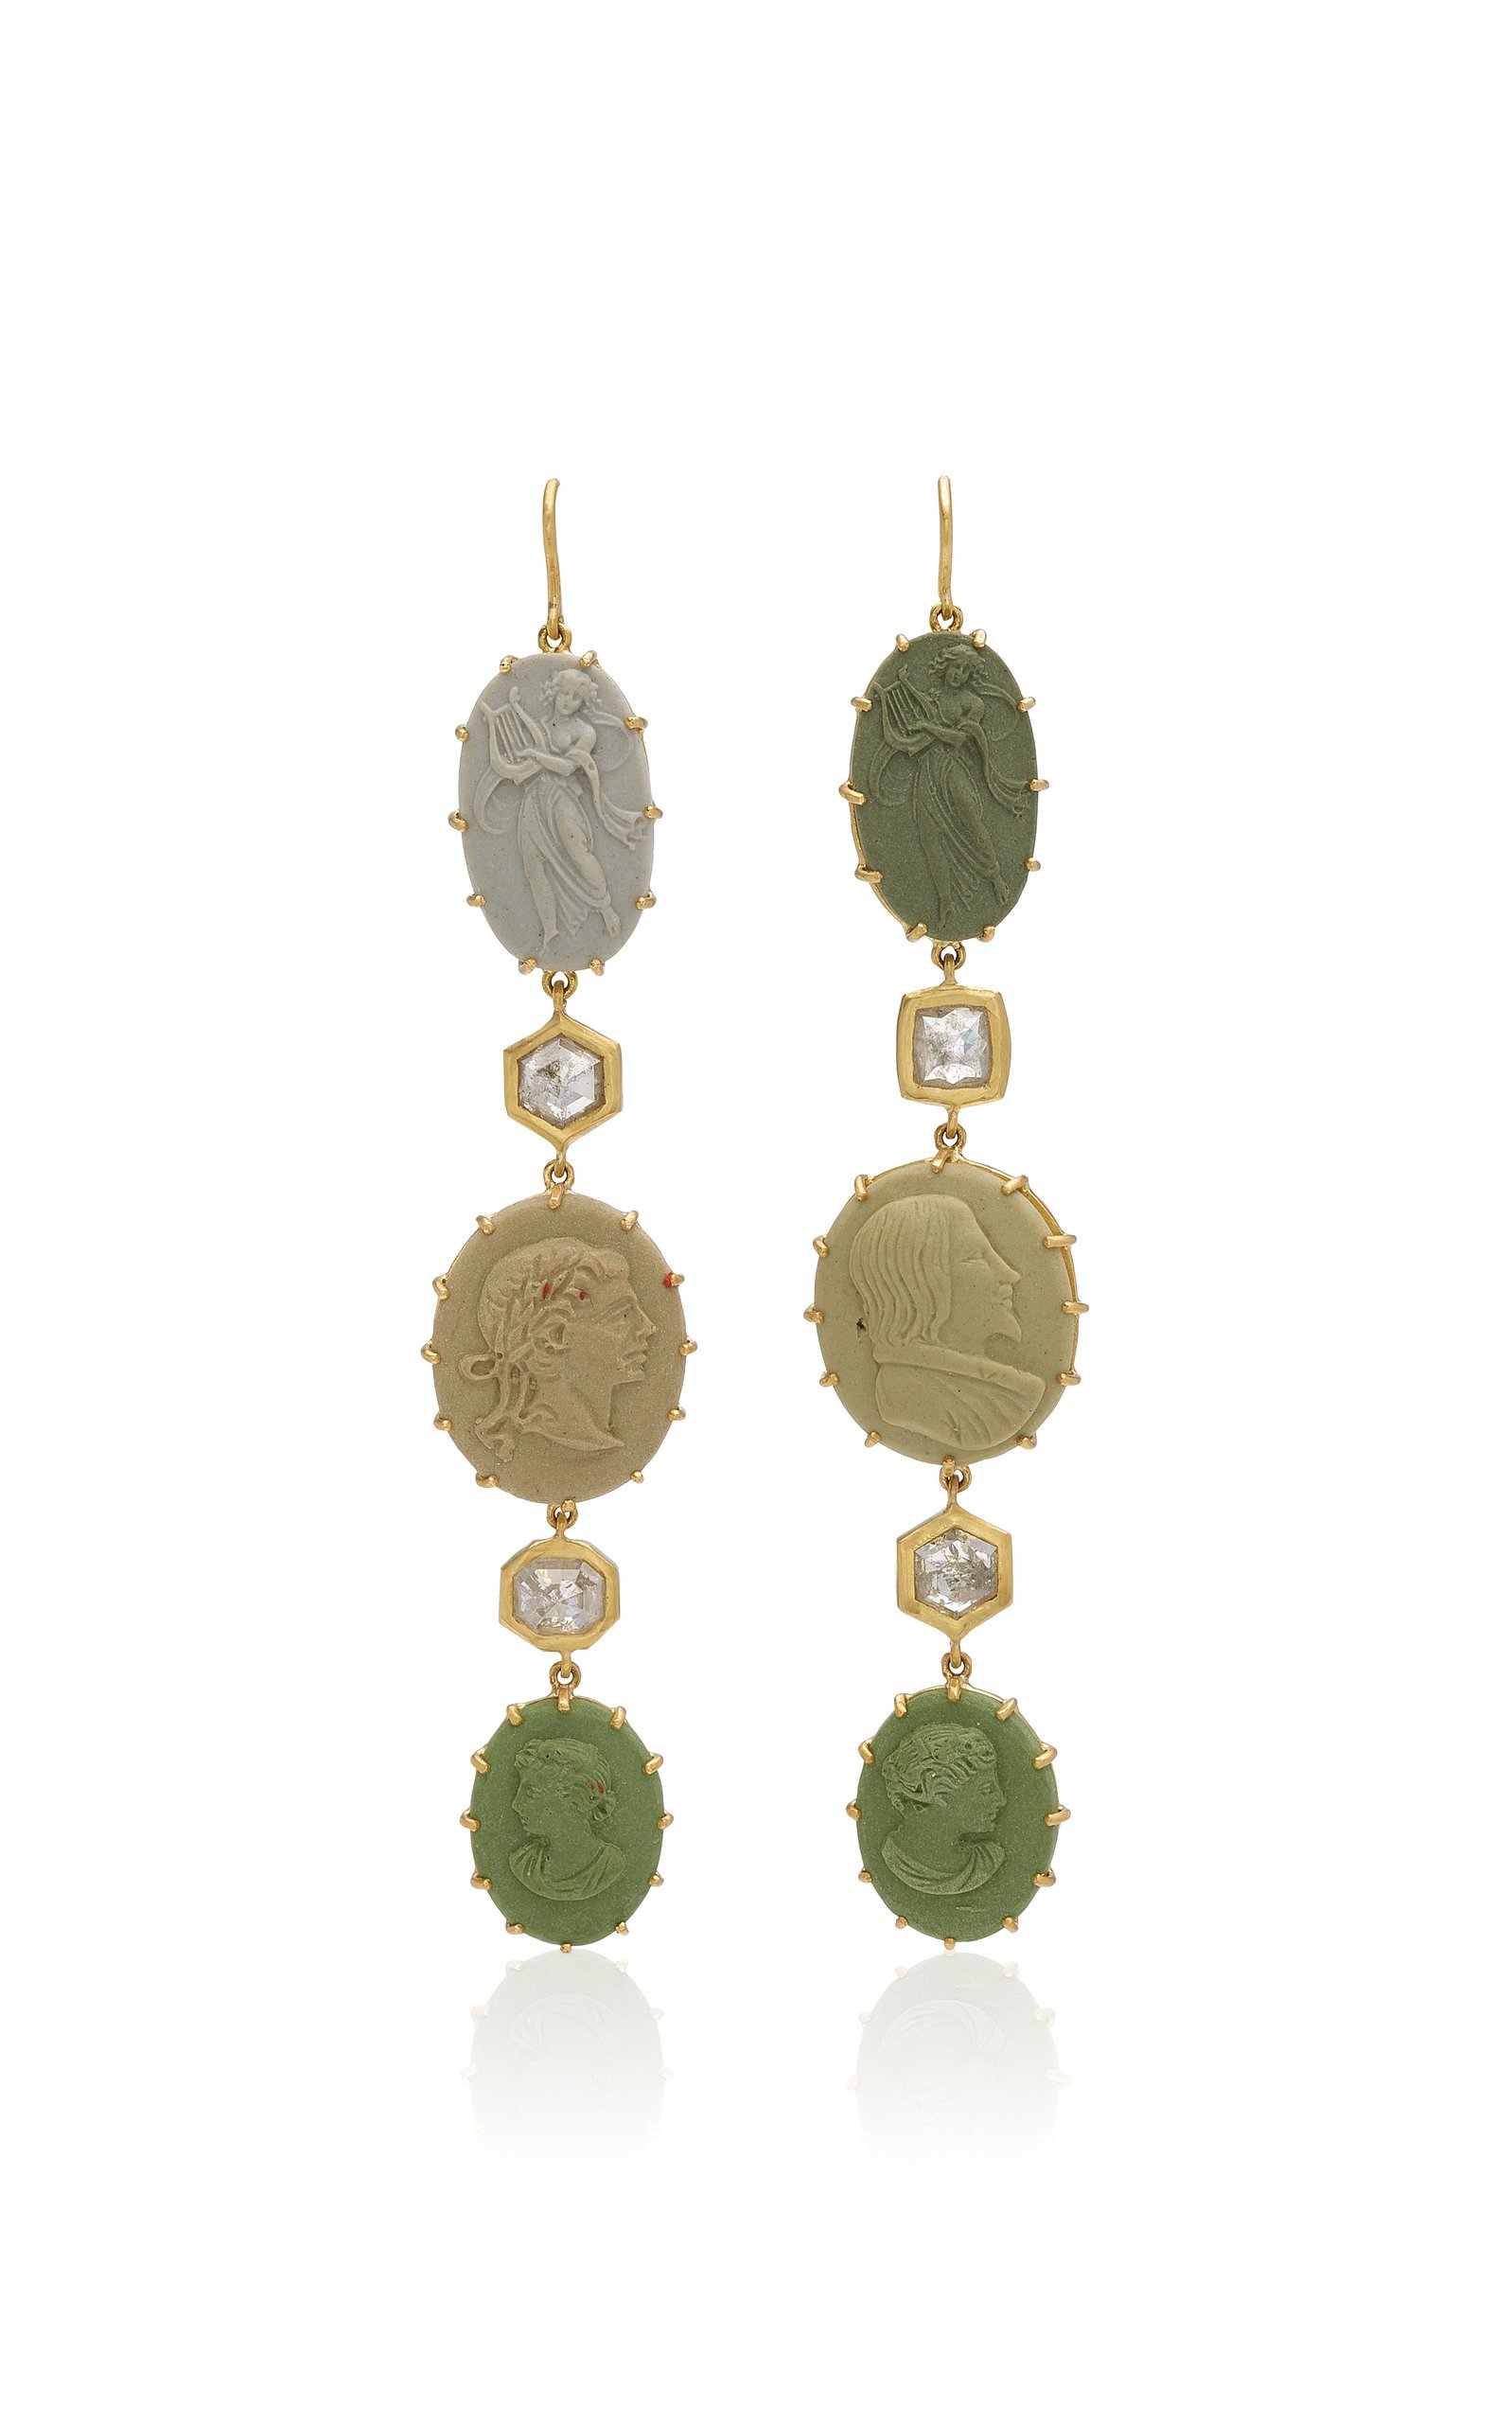 Sylva & Cie One of a Kind 18K Yellow Gold, Lava Cameo and Diamond Earr